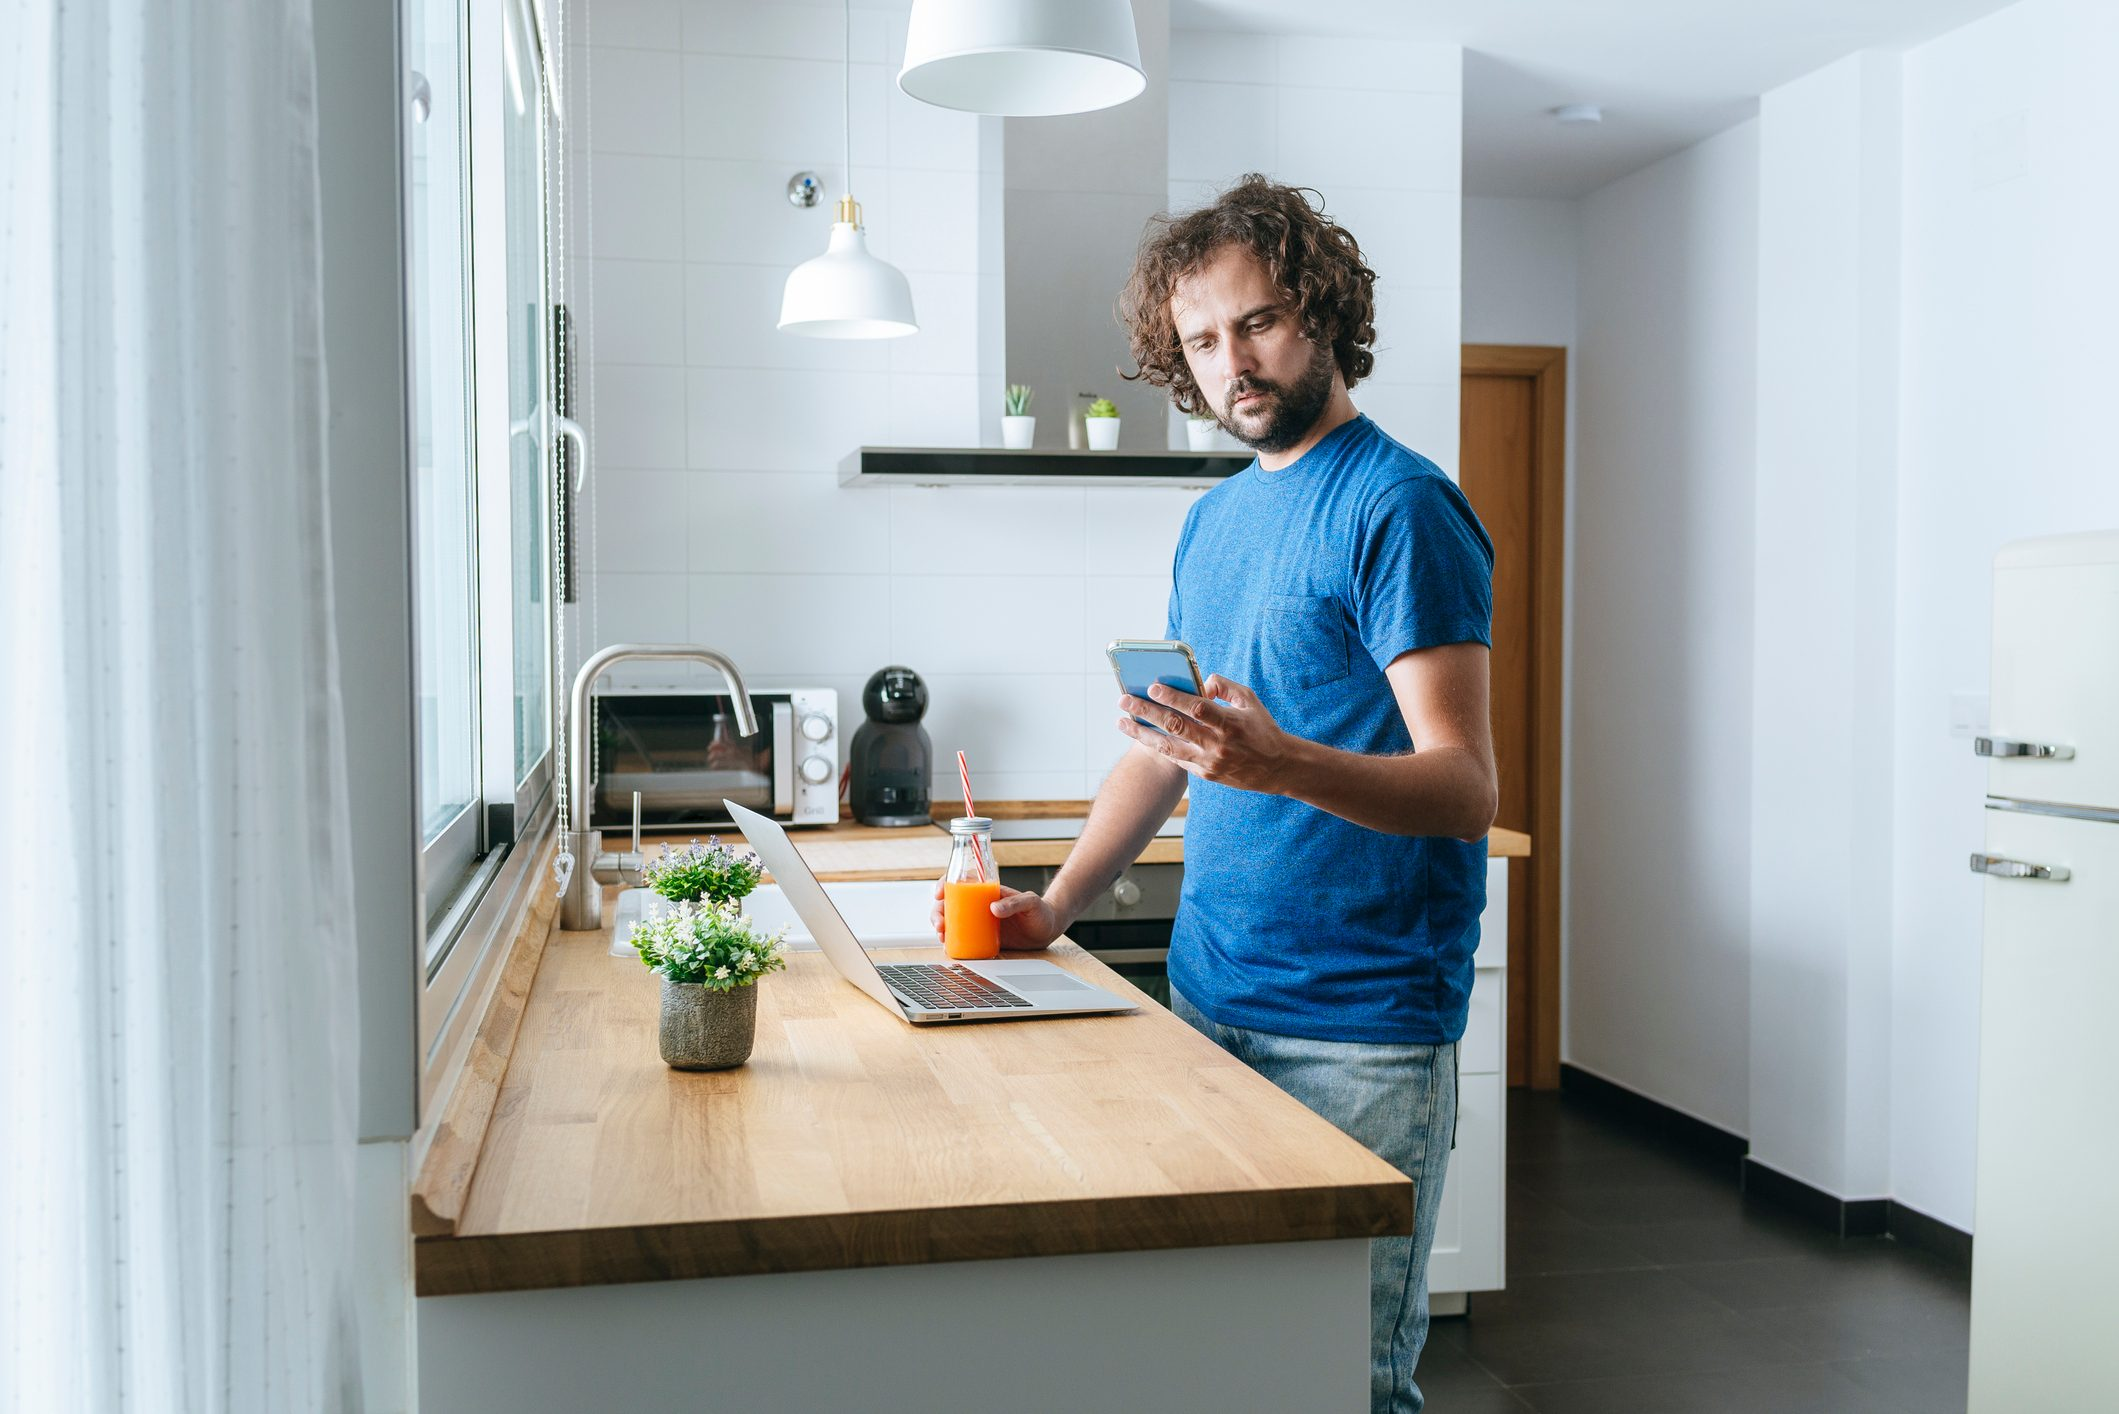 Man with smartphone and laptop in the kitchen